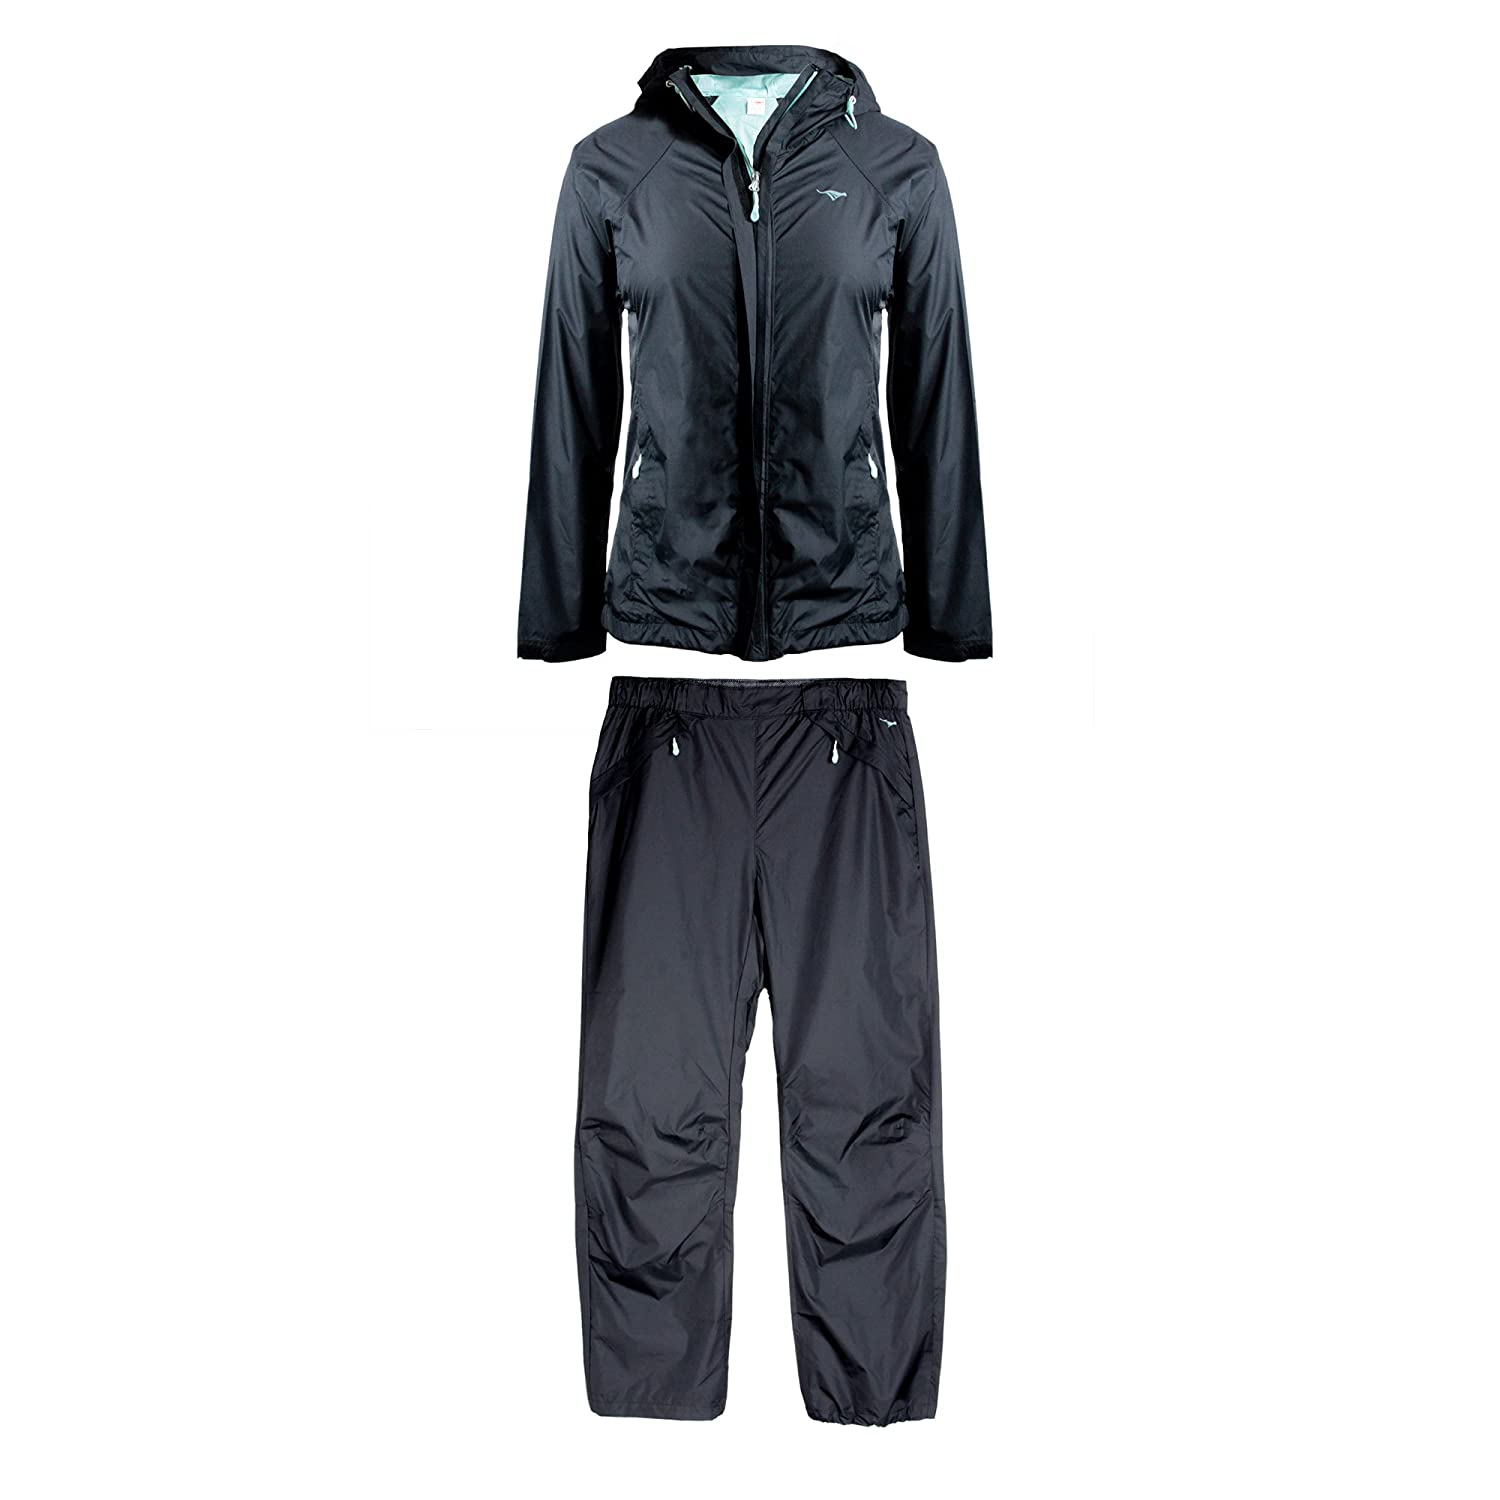 Ladies rain suits for golf